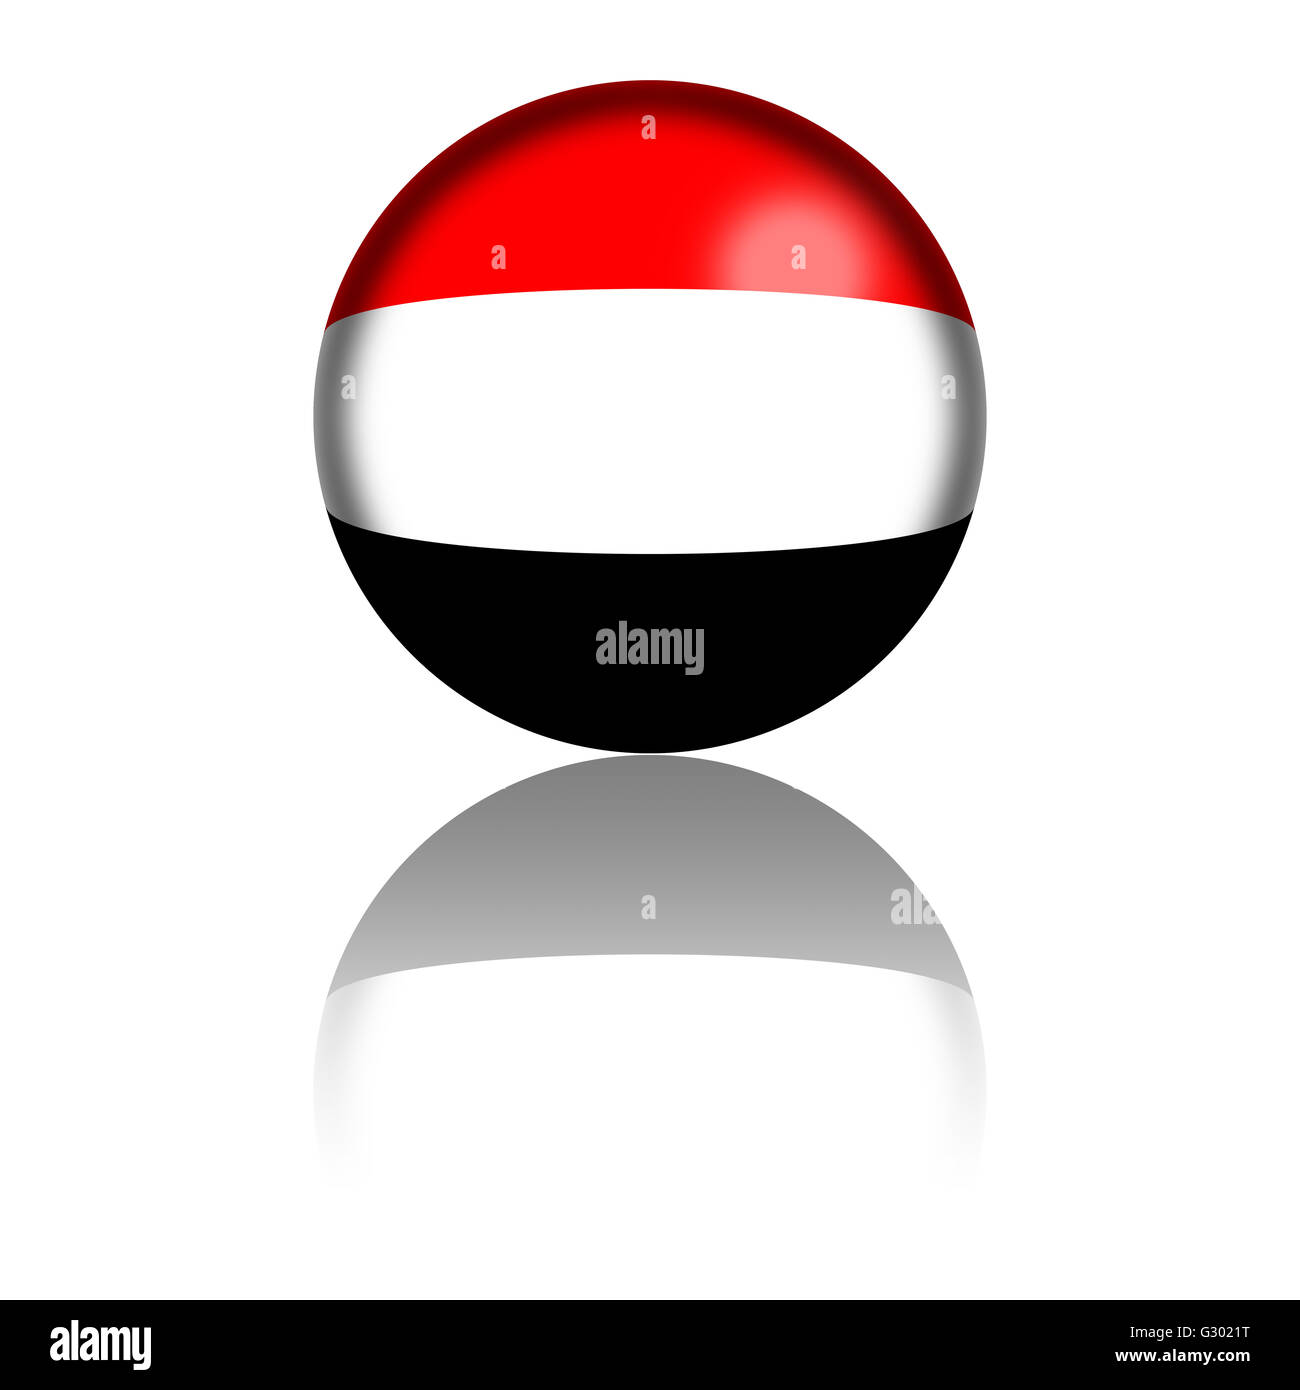 3D sphere or badge of Yemen flag with reflection at bottom. Stock Photo